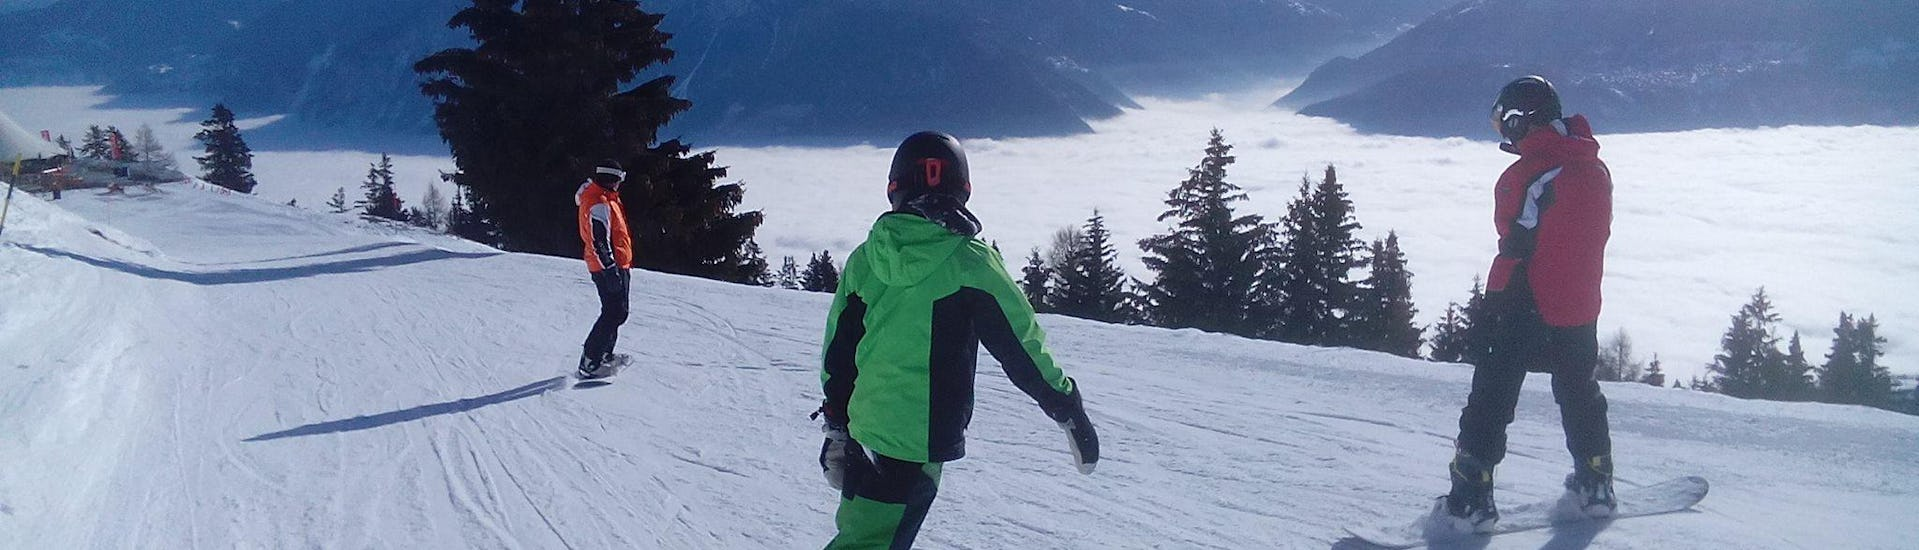 Snowboarding Lessons for Kids (12-15 years) - Max 5 - Crans